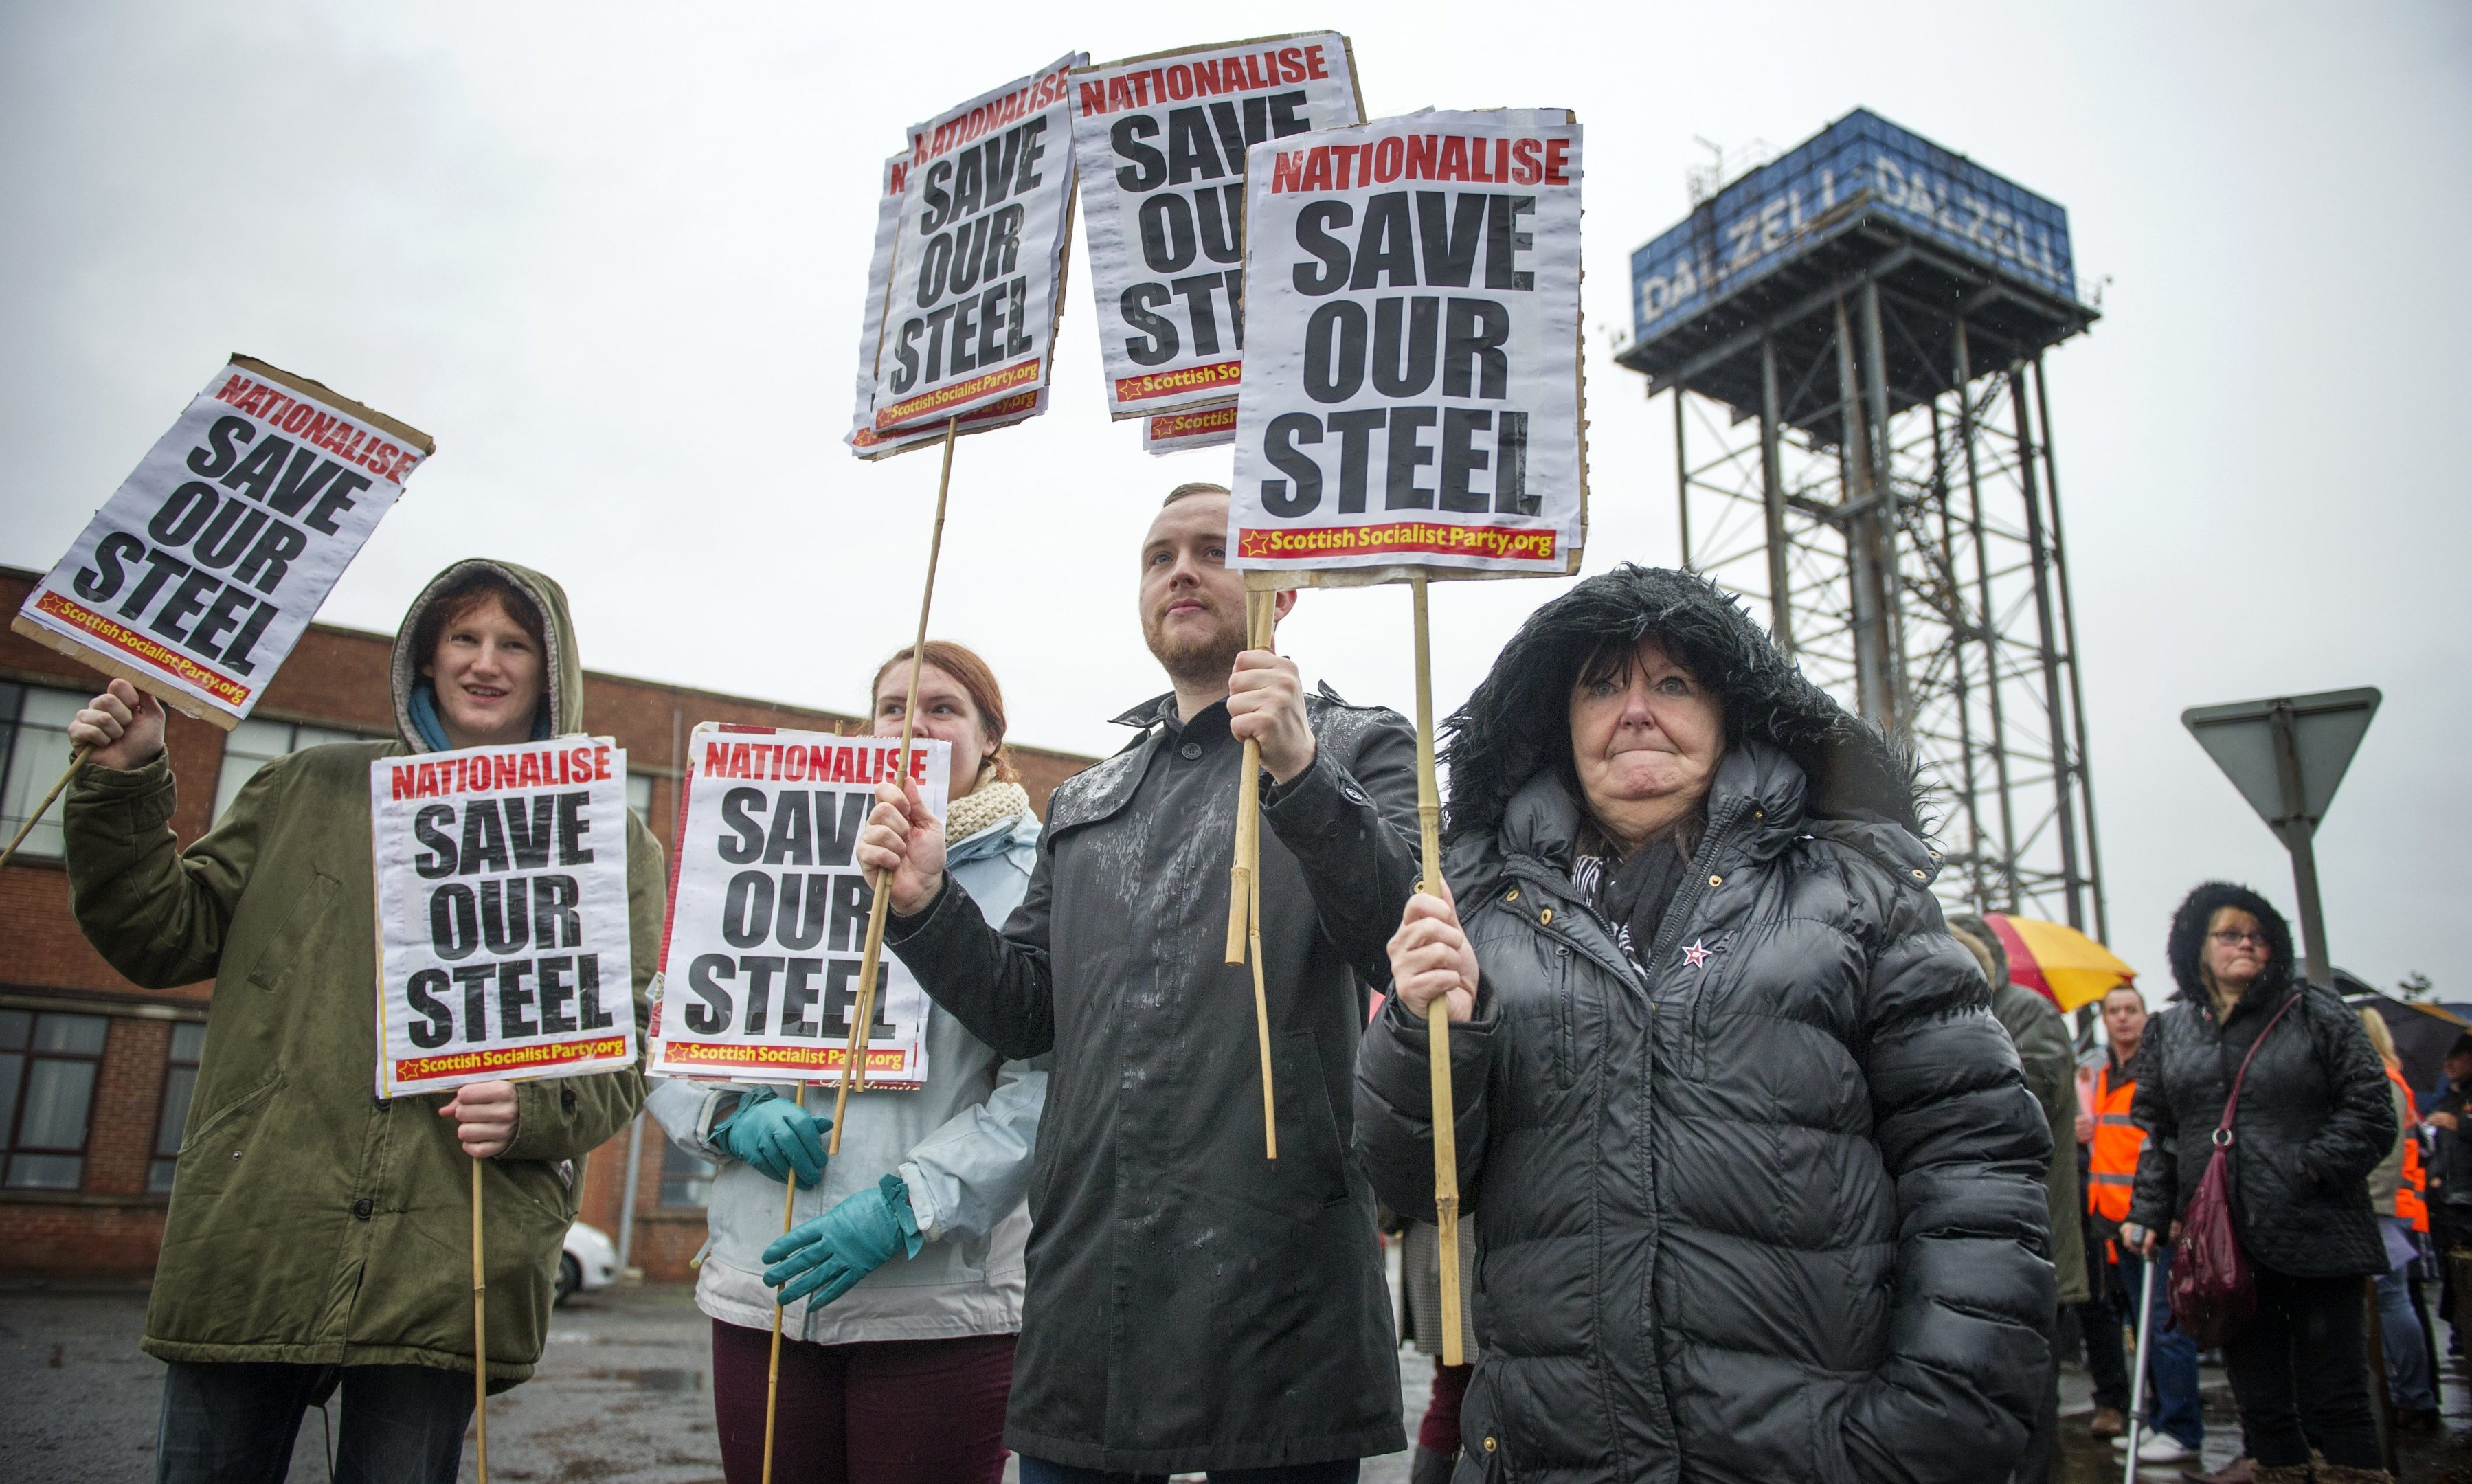 Hundreds of steel workers marching through Motherwell last year in a bid to save their jobs and prevent the closure of the steel industry in Scotland.